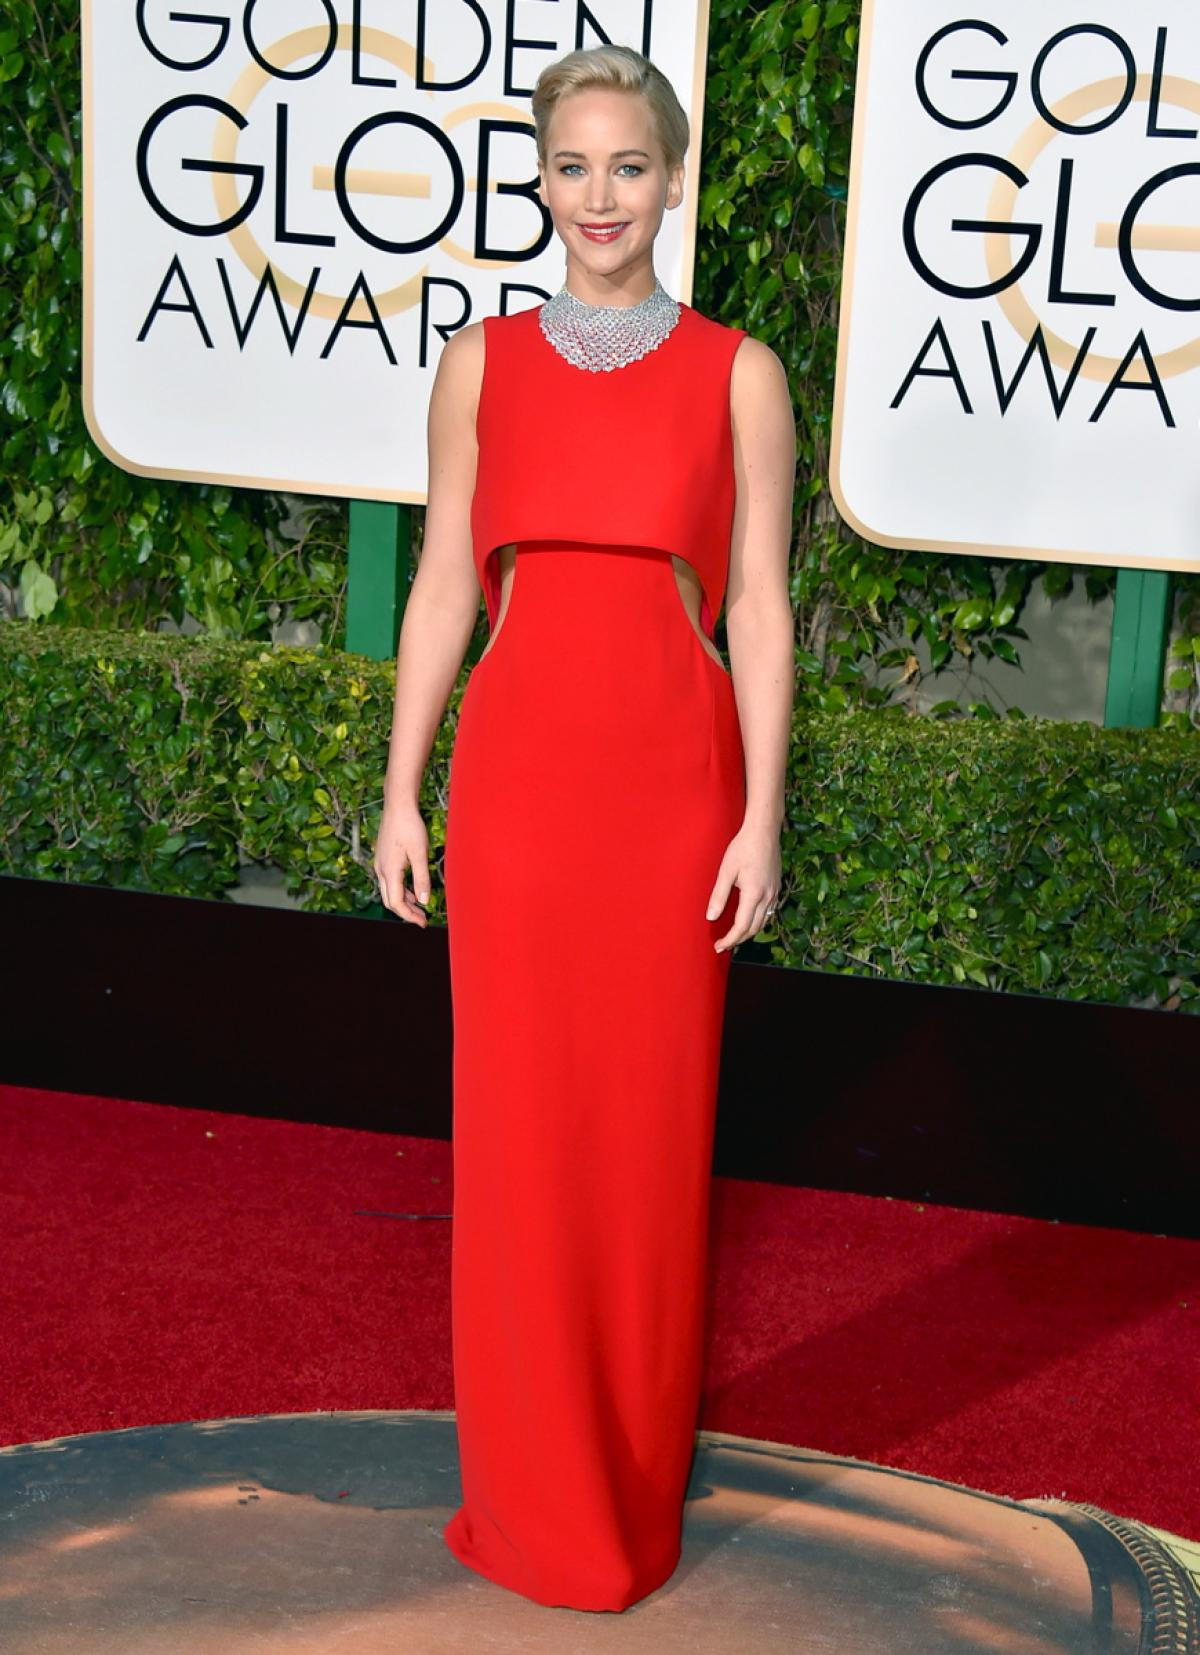 Jennifer Lawrence at Golden Globes Awards 2016